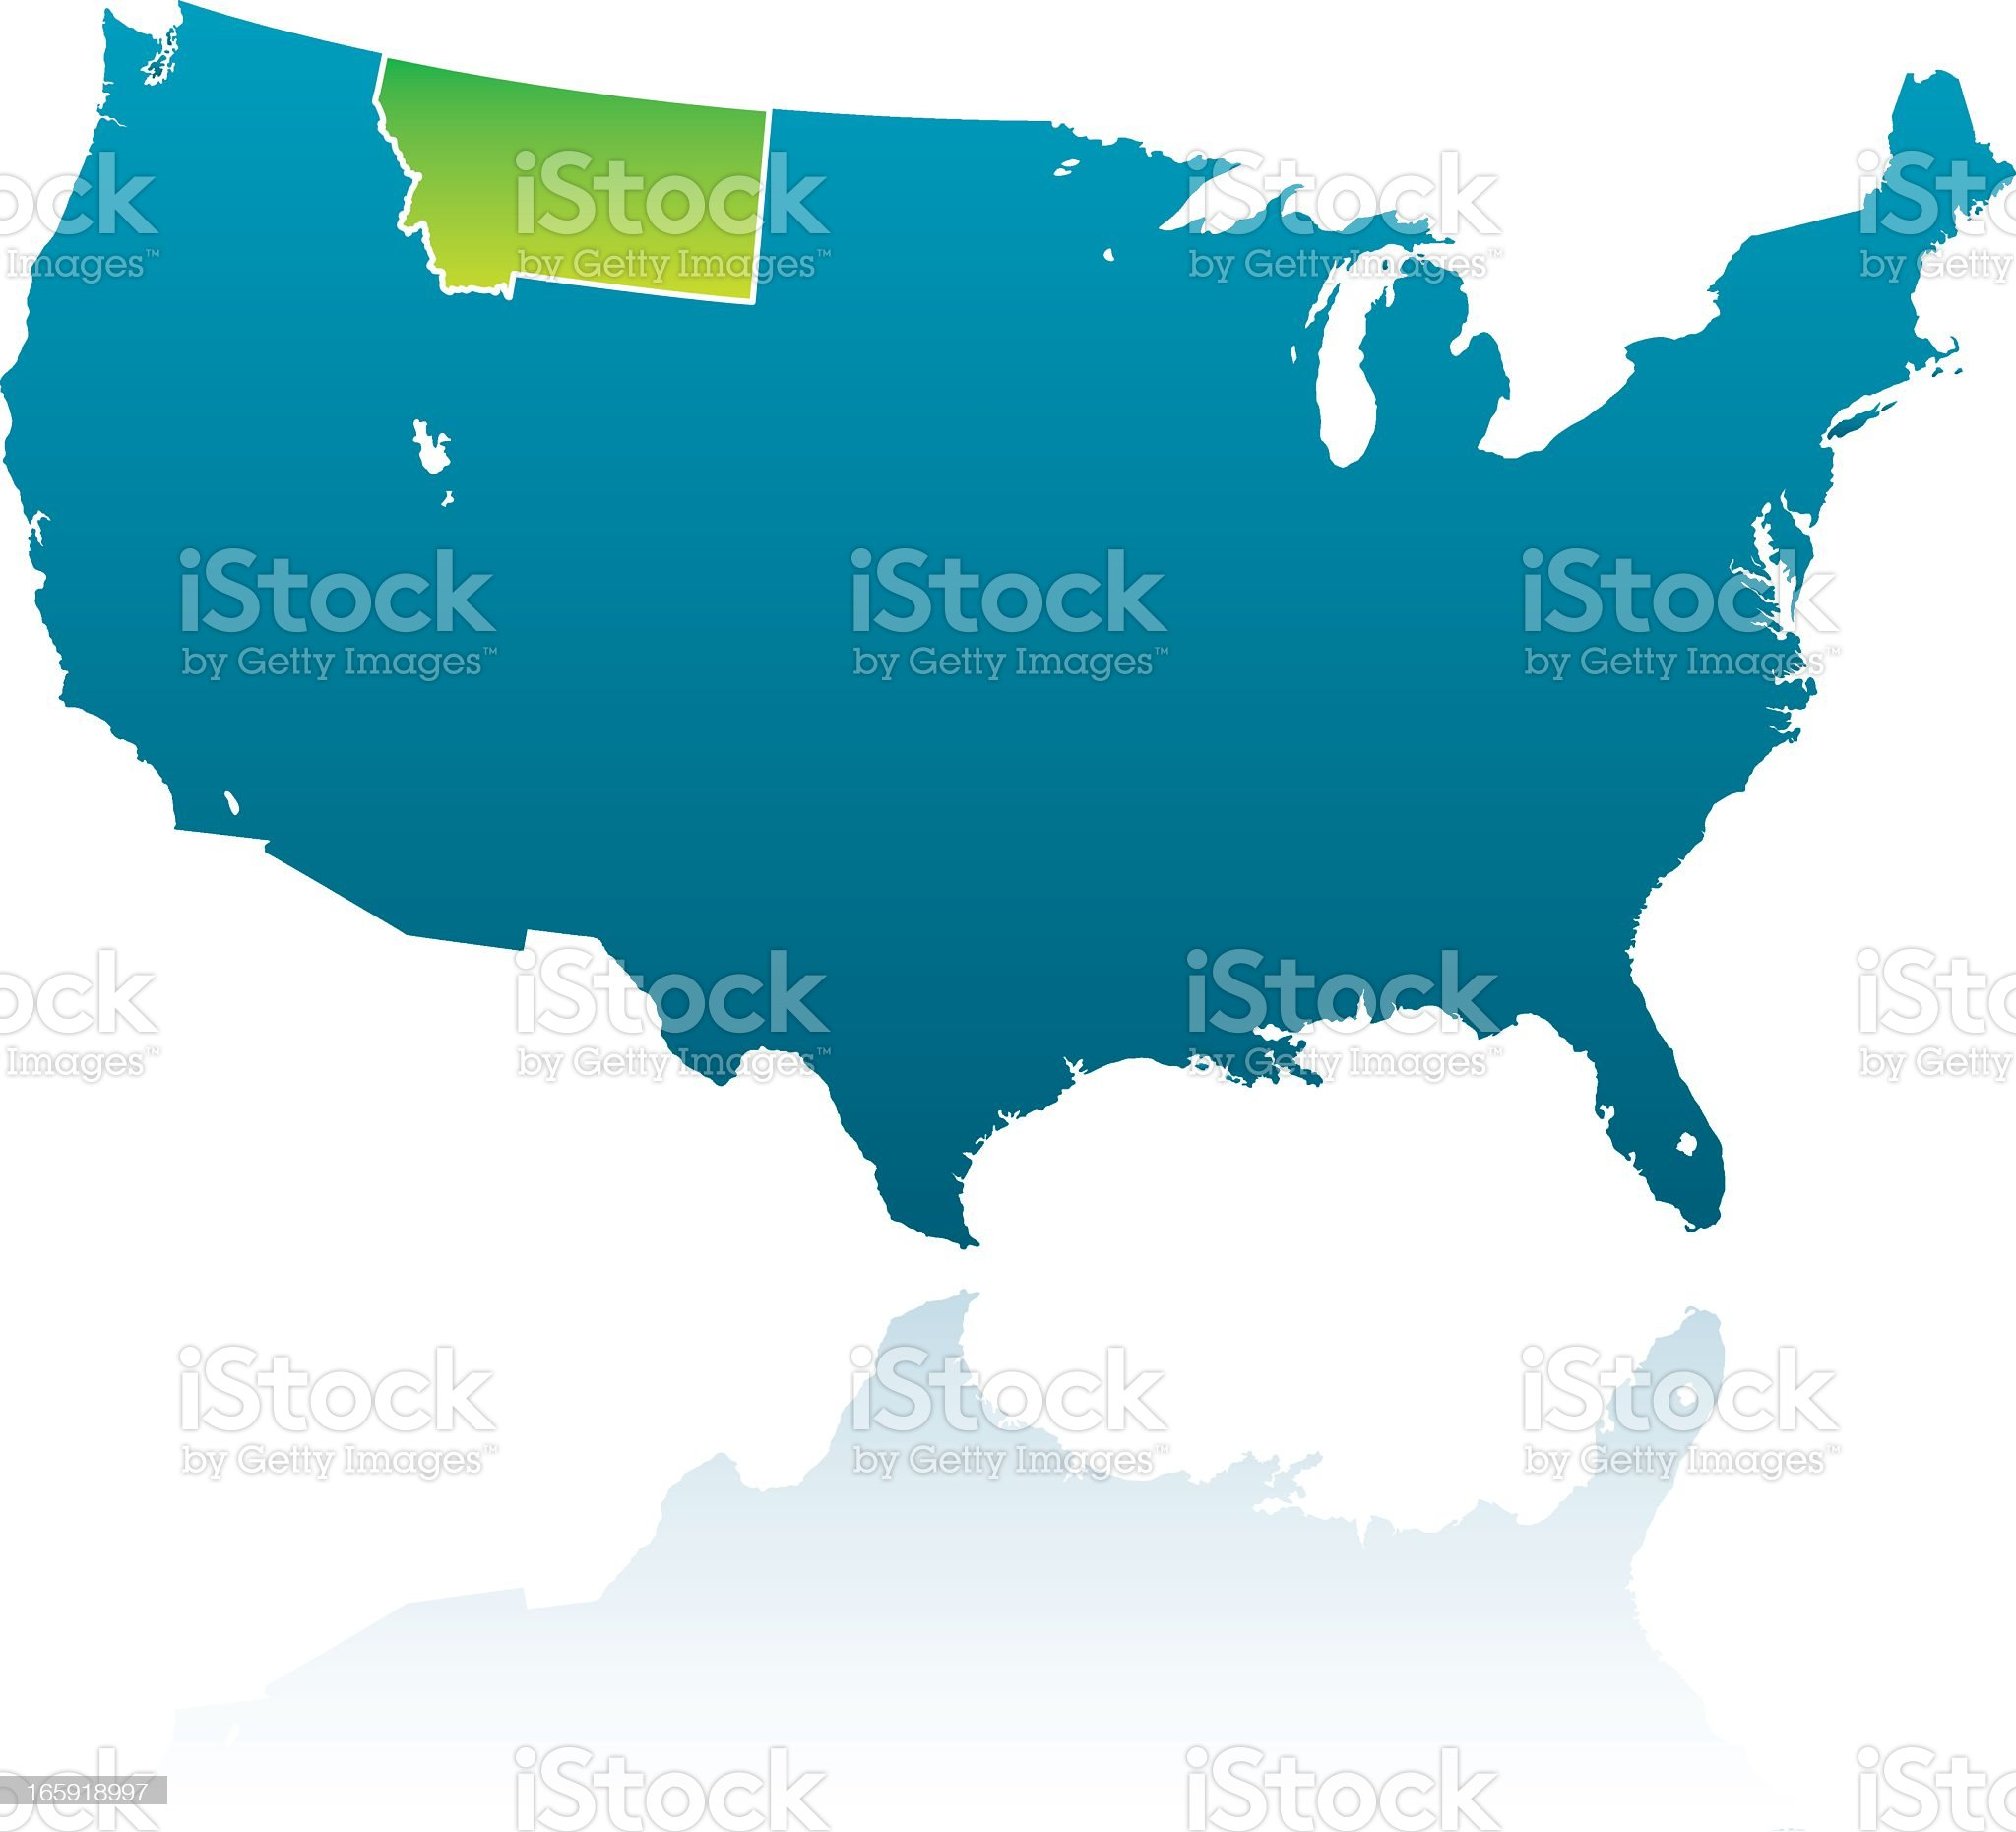 United States Maps: Montana royalty-free stock vector art